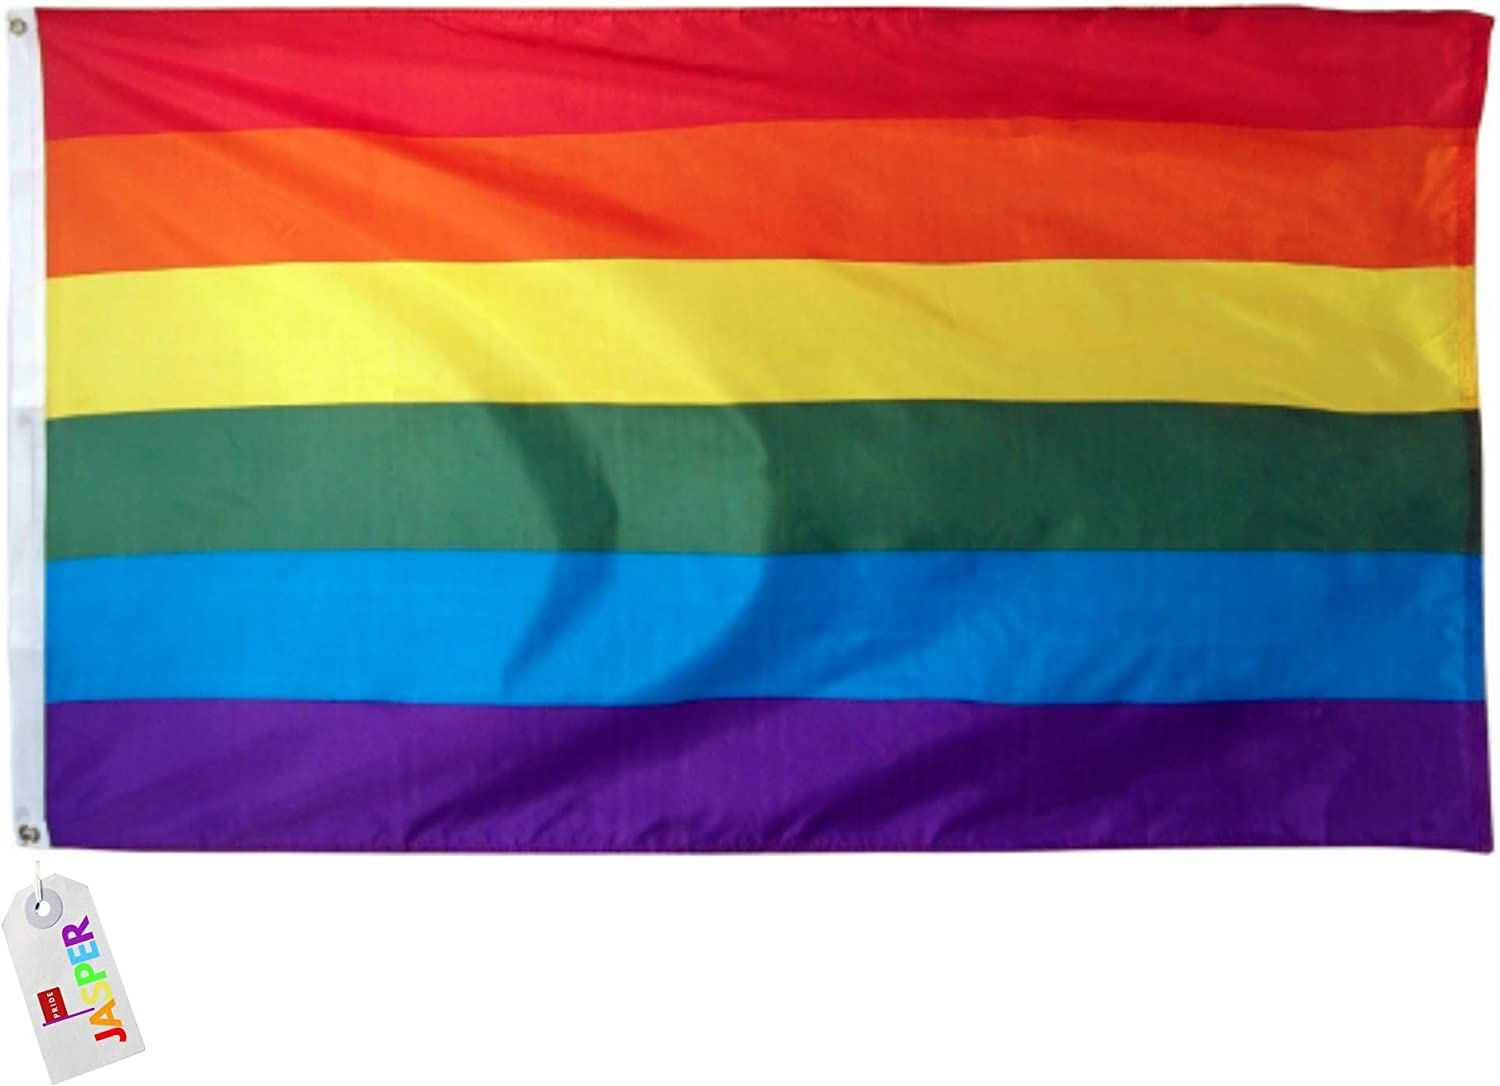 Rainbow Pride Gay Flag 3x5 Feet 36 X 60 Inches 100 Polyester With Two Metal Grommets Flagpole Lgbt Garden Outdoor Amazon Com